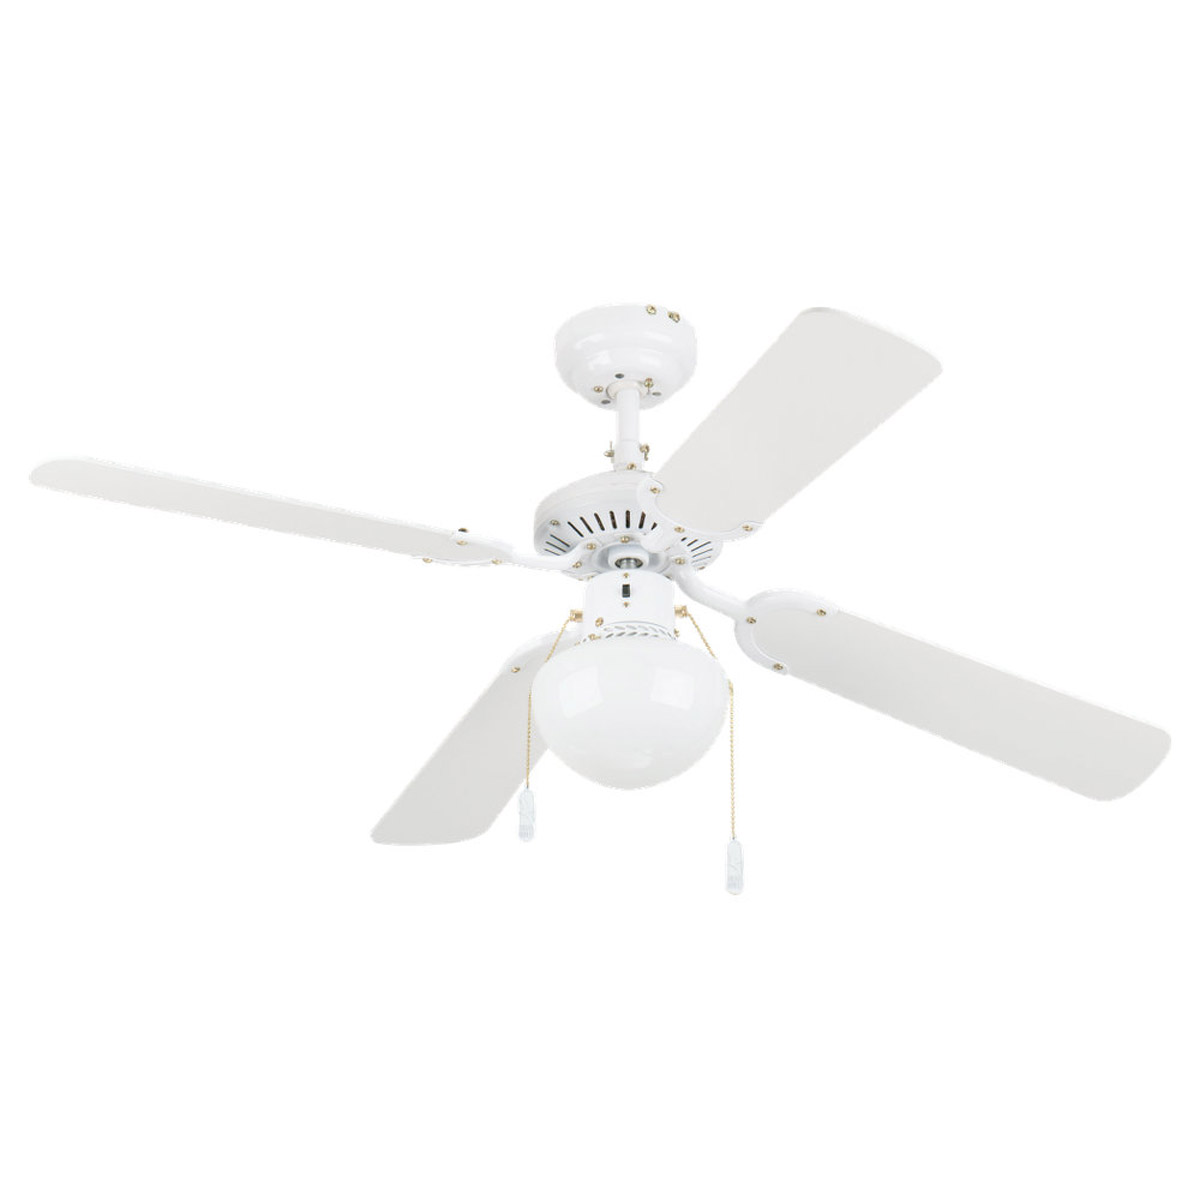 Sea Gull Lighting Hatteras Fans 1 Light Outdoor Ceiling Fan in White 15124BL-15